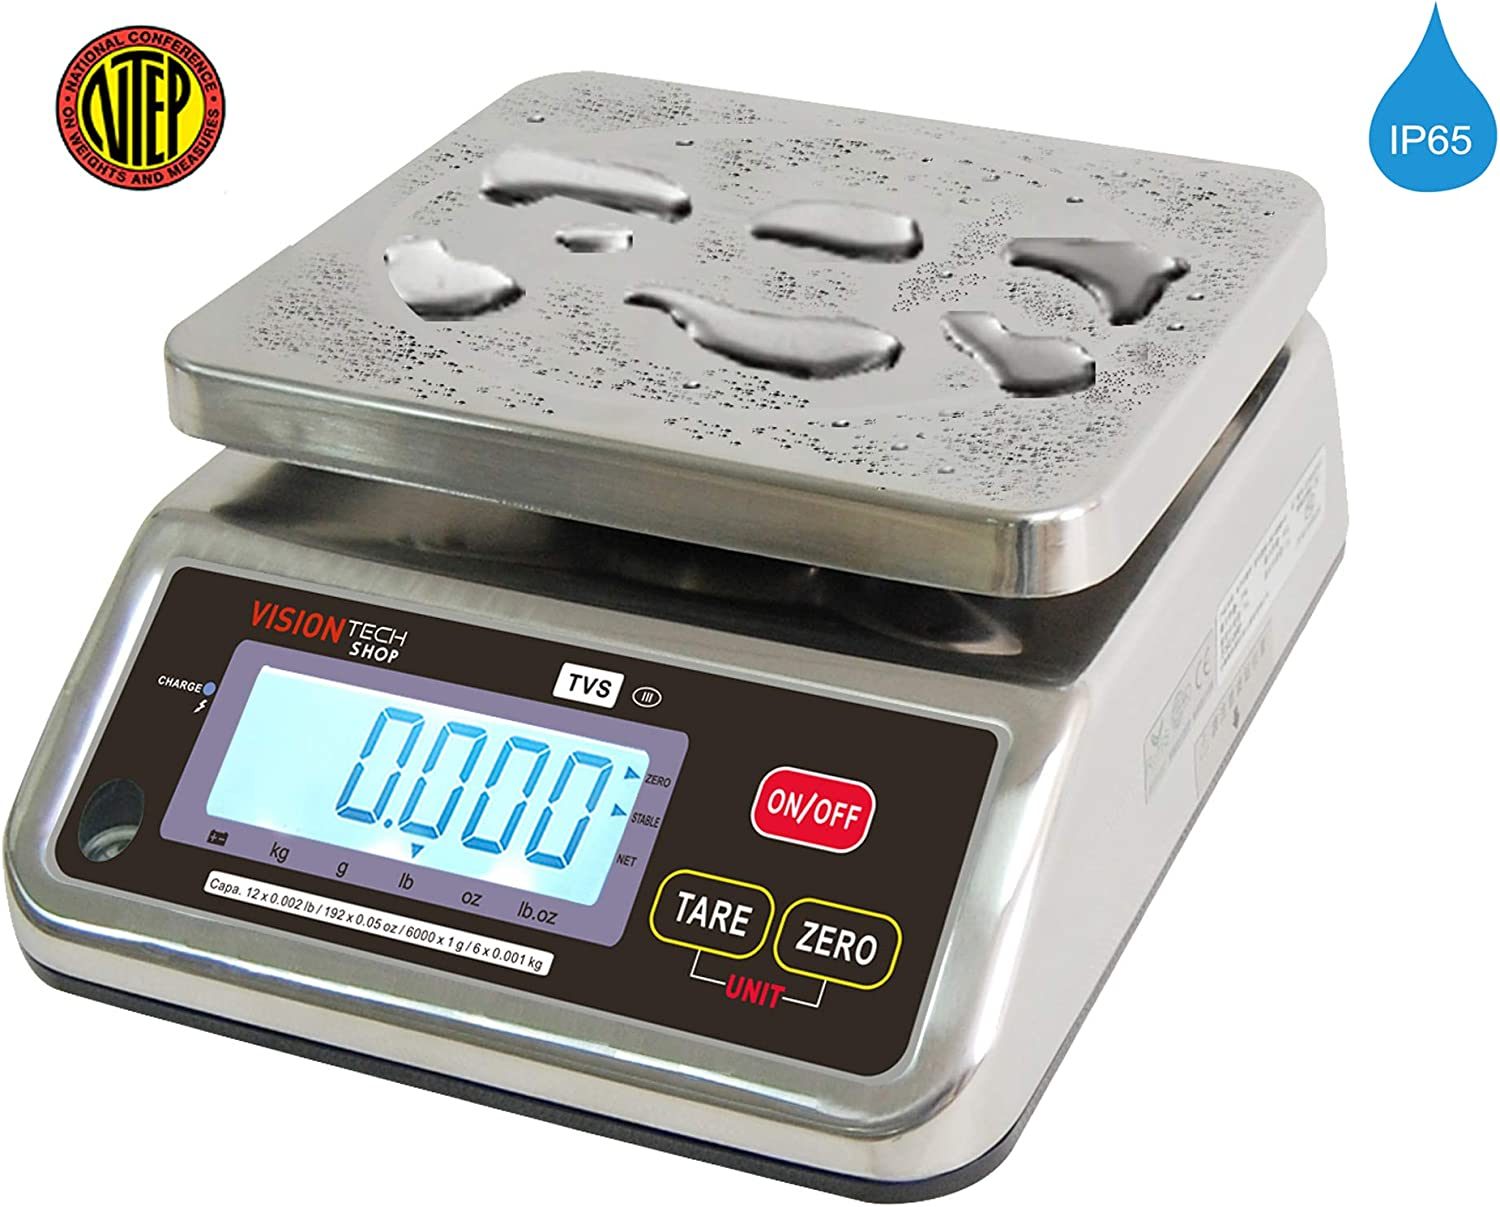 0.001lb Readability Lb//Oz//Kg//g Switchable 6lb Capacity NTEP Legal for Trade VisionTechShop TVS Portion control Stainless steel Washdown Scale Low Profile Design Dual Display